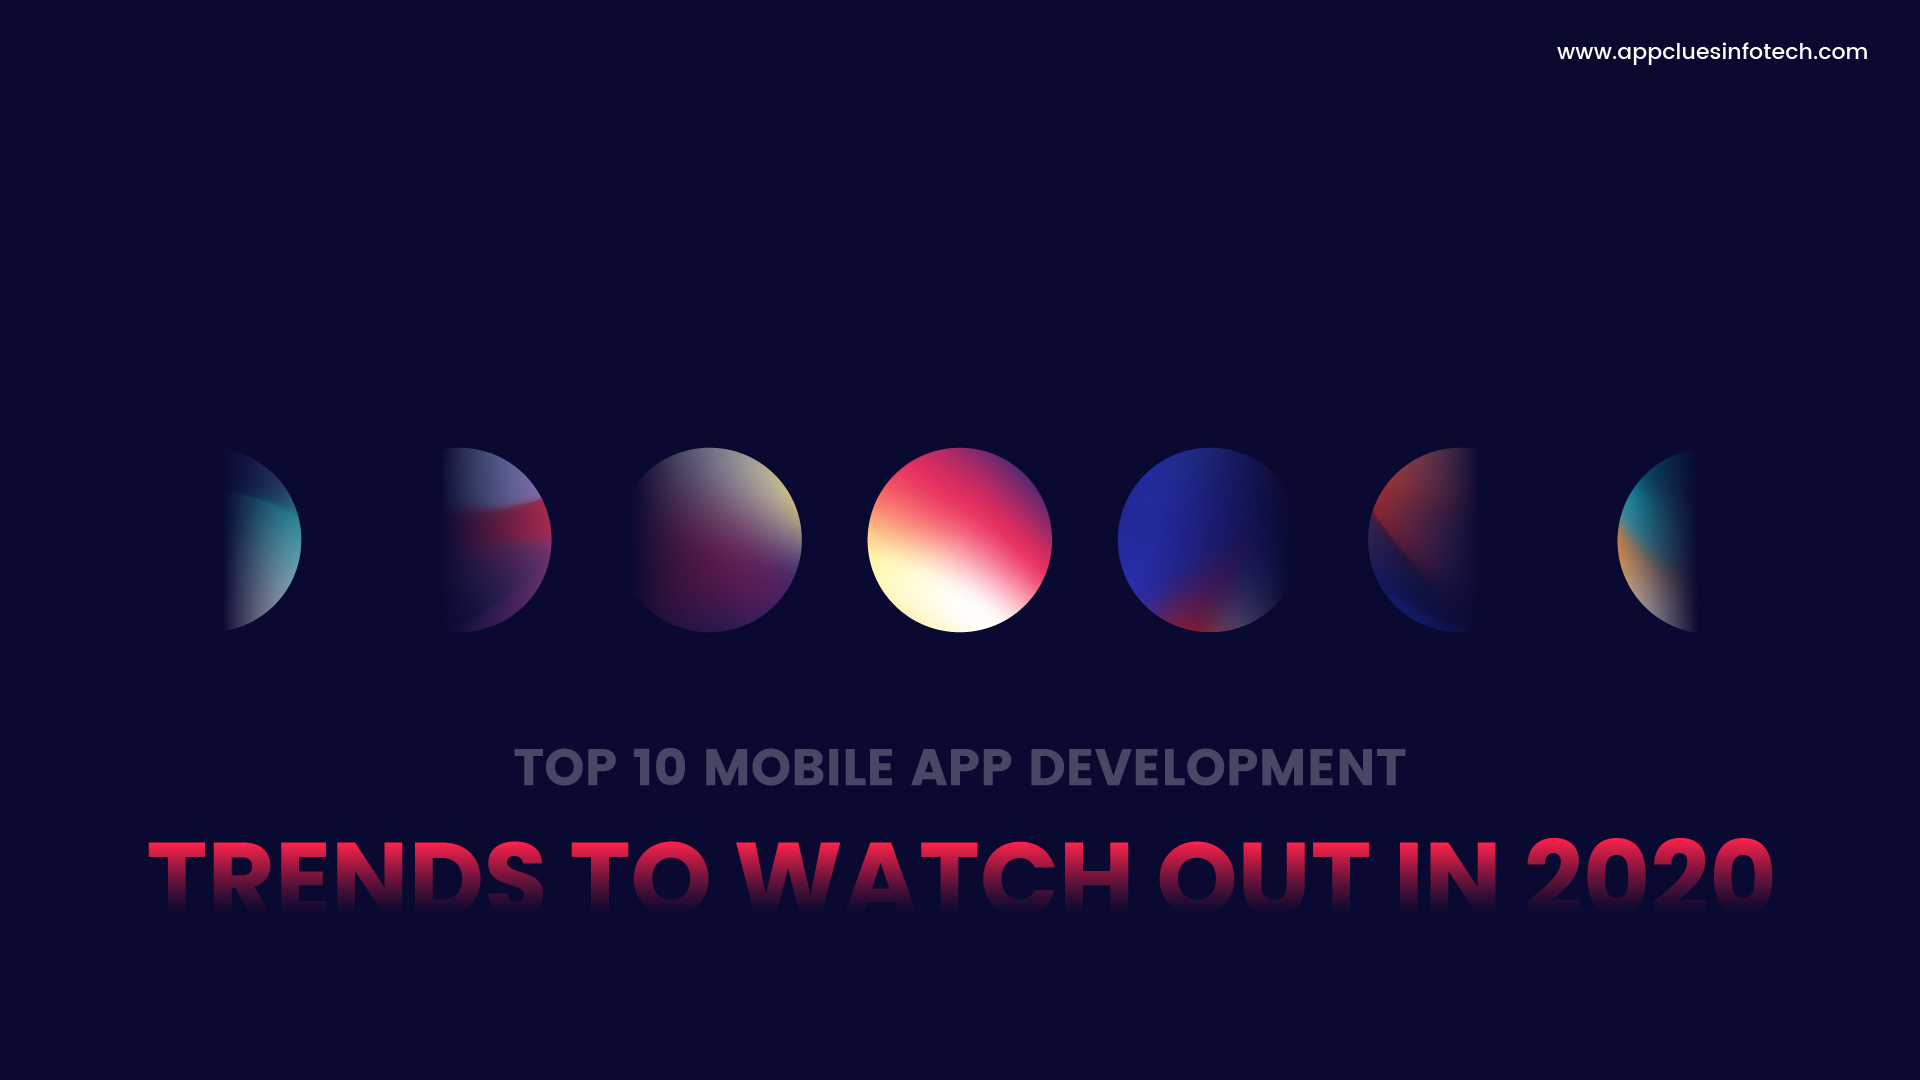 Top Mobile App Development Trends To Watch Out in 2020